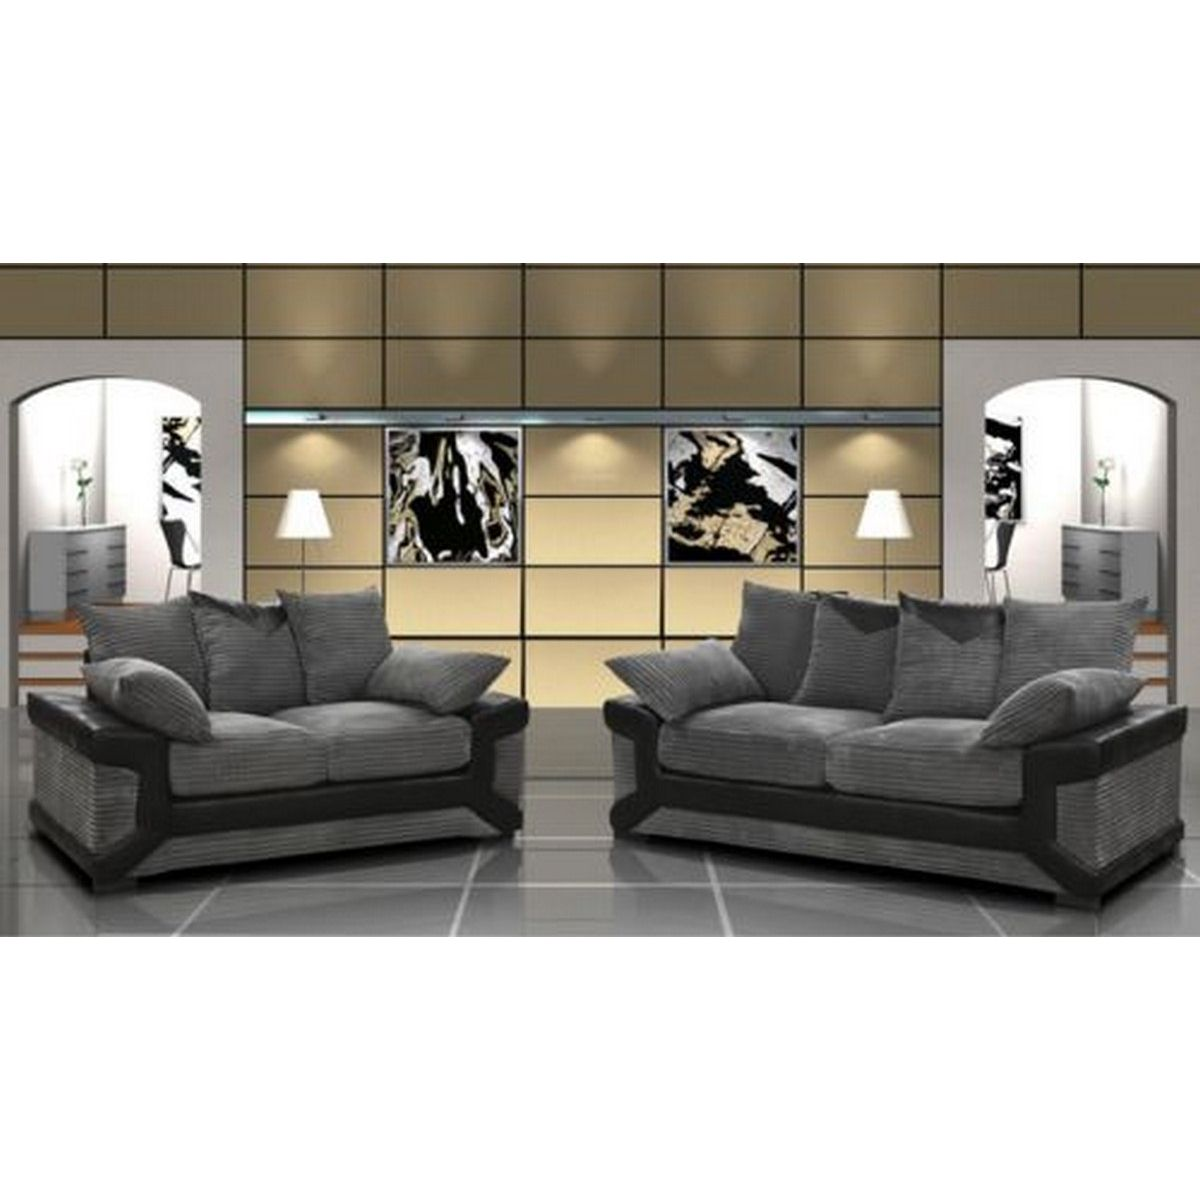 deco in paris 3 ensemble canape 3 2 places gris et noir diego diego 3 2 gris noir. Black Bedroom Furniture Sets. Home Design Ideas